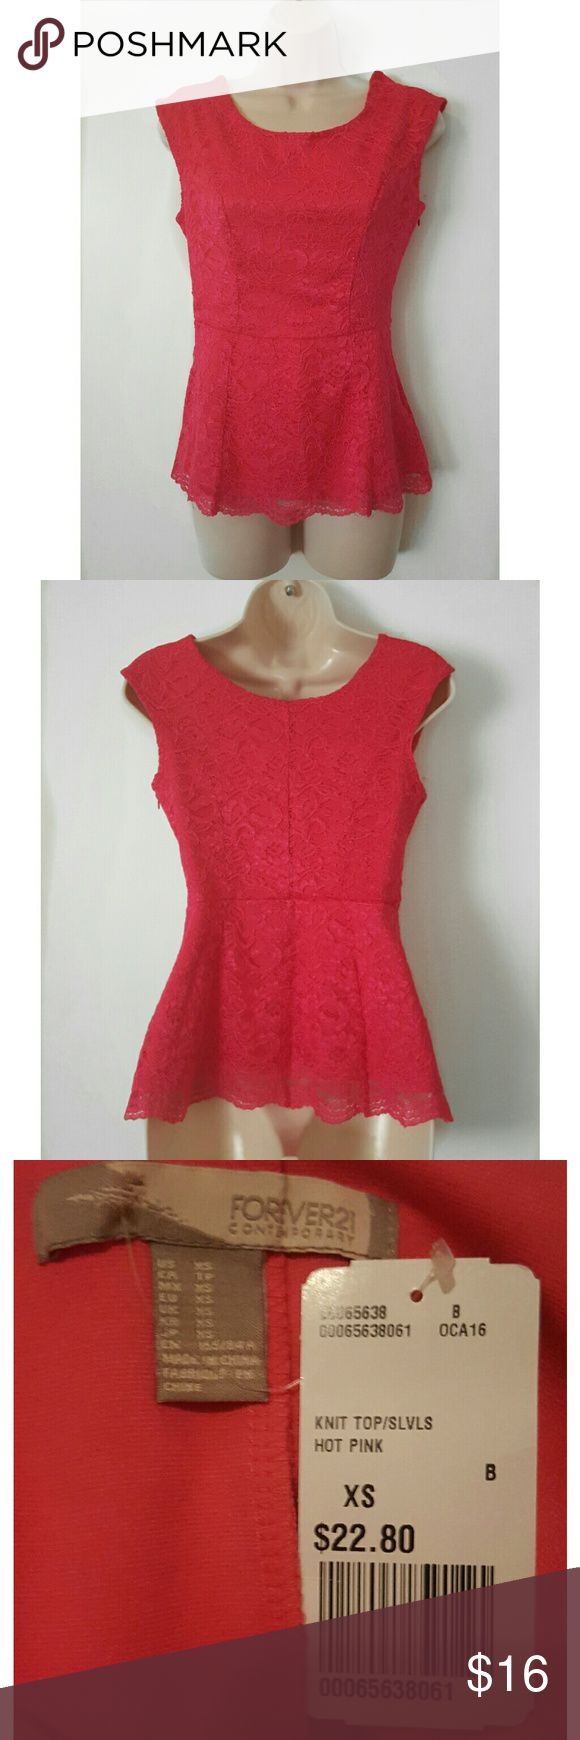 Hot Pink Lace Peplum Top NWT Size XS  New with Tag  Side Zipper  Sleeveless Forever 21 Tops